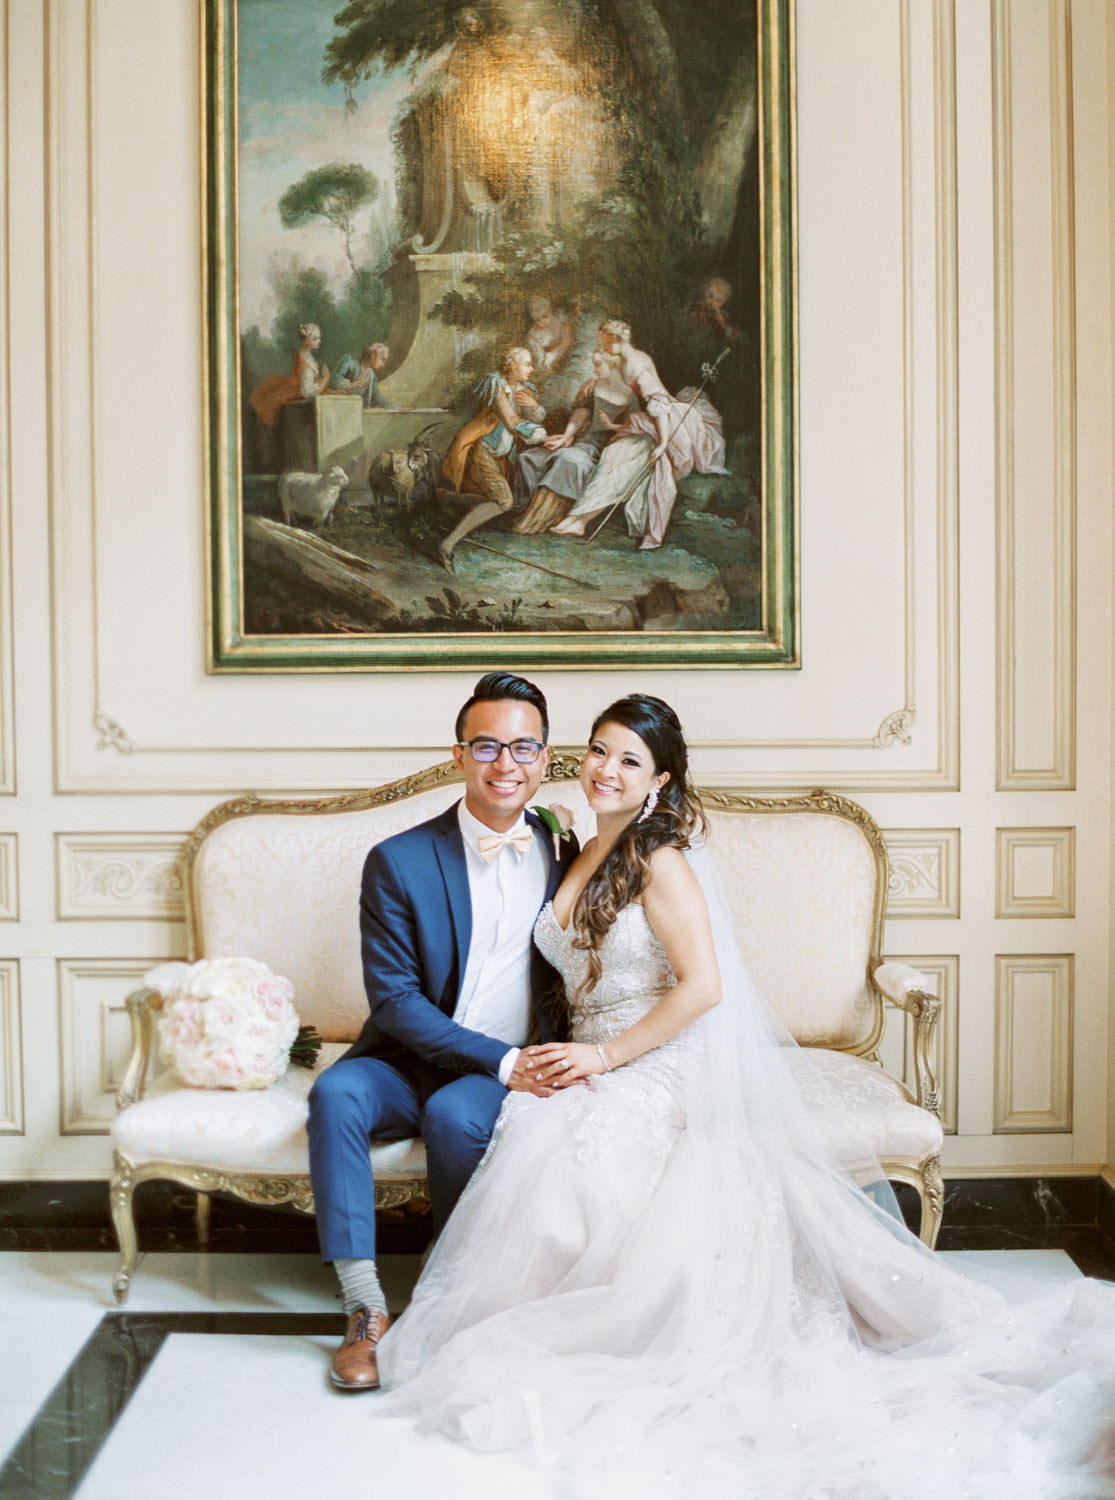 Bride and groom on a vintage sofa under a fine art painting at the Elegant Westgate Hotel Wedding in Downtown San Diego, Cavin Elizabeth Photography